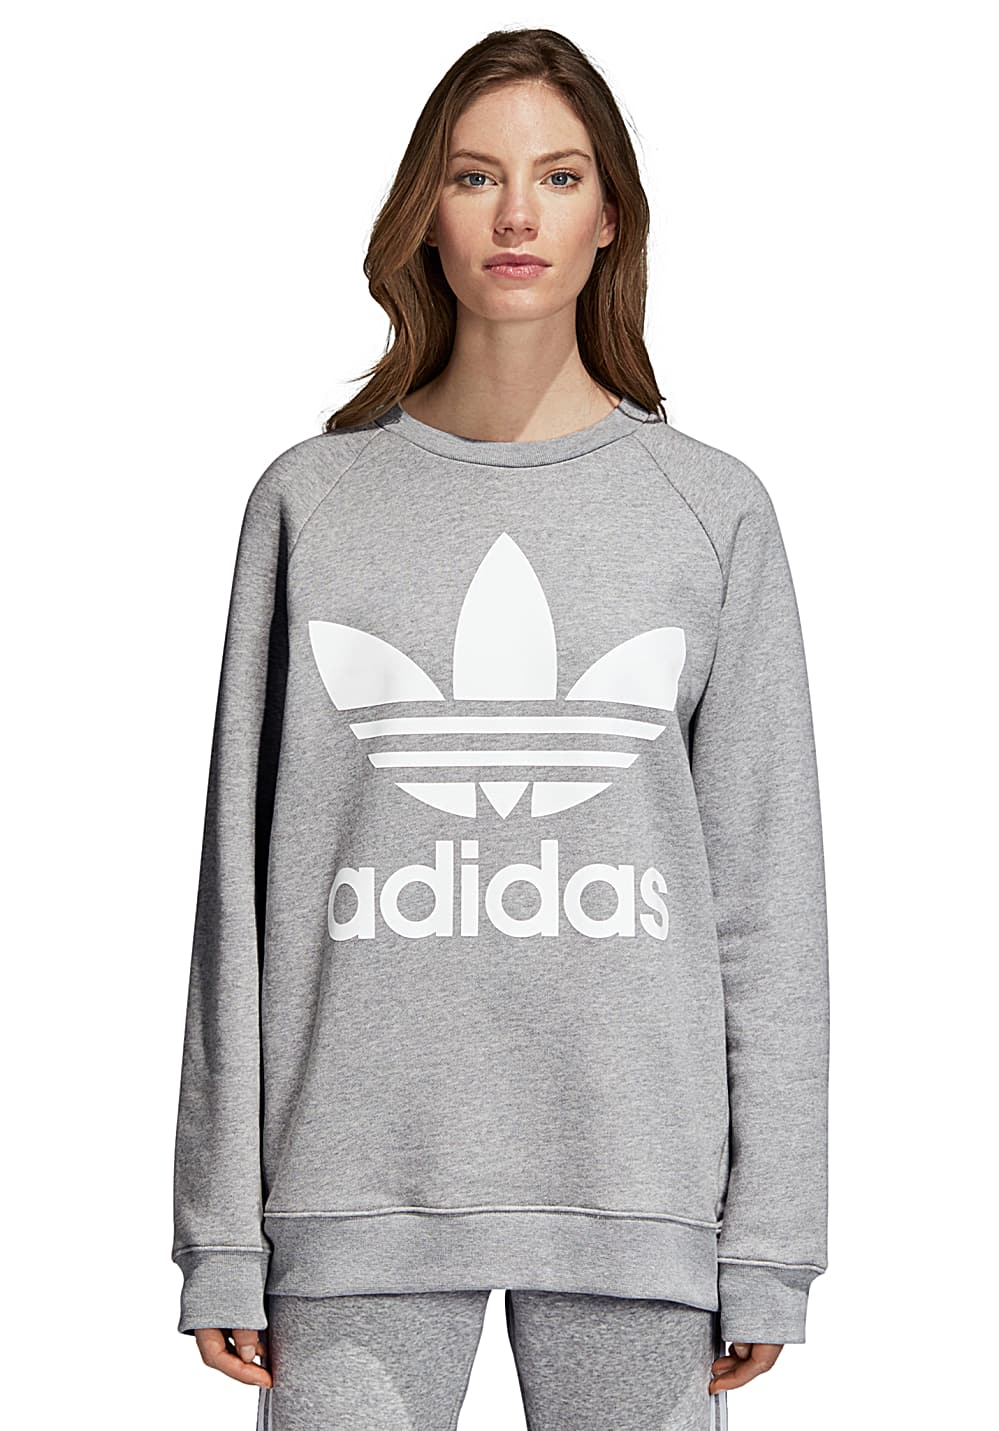 8020657d ADIDAS ORIGINALS Oversized - Sweatshirt for Women - Grey - Planet Sports